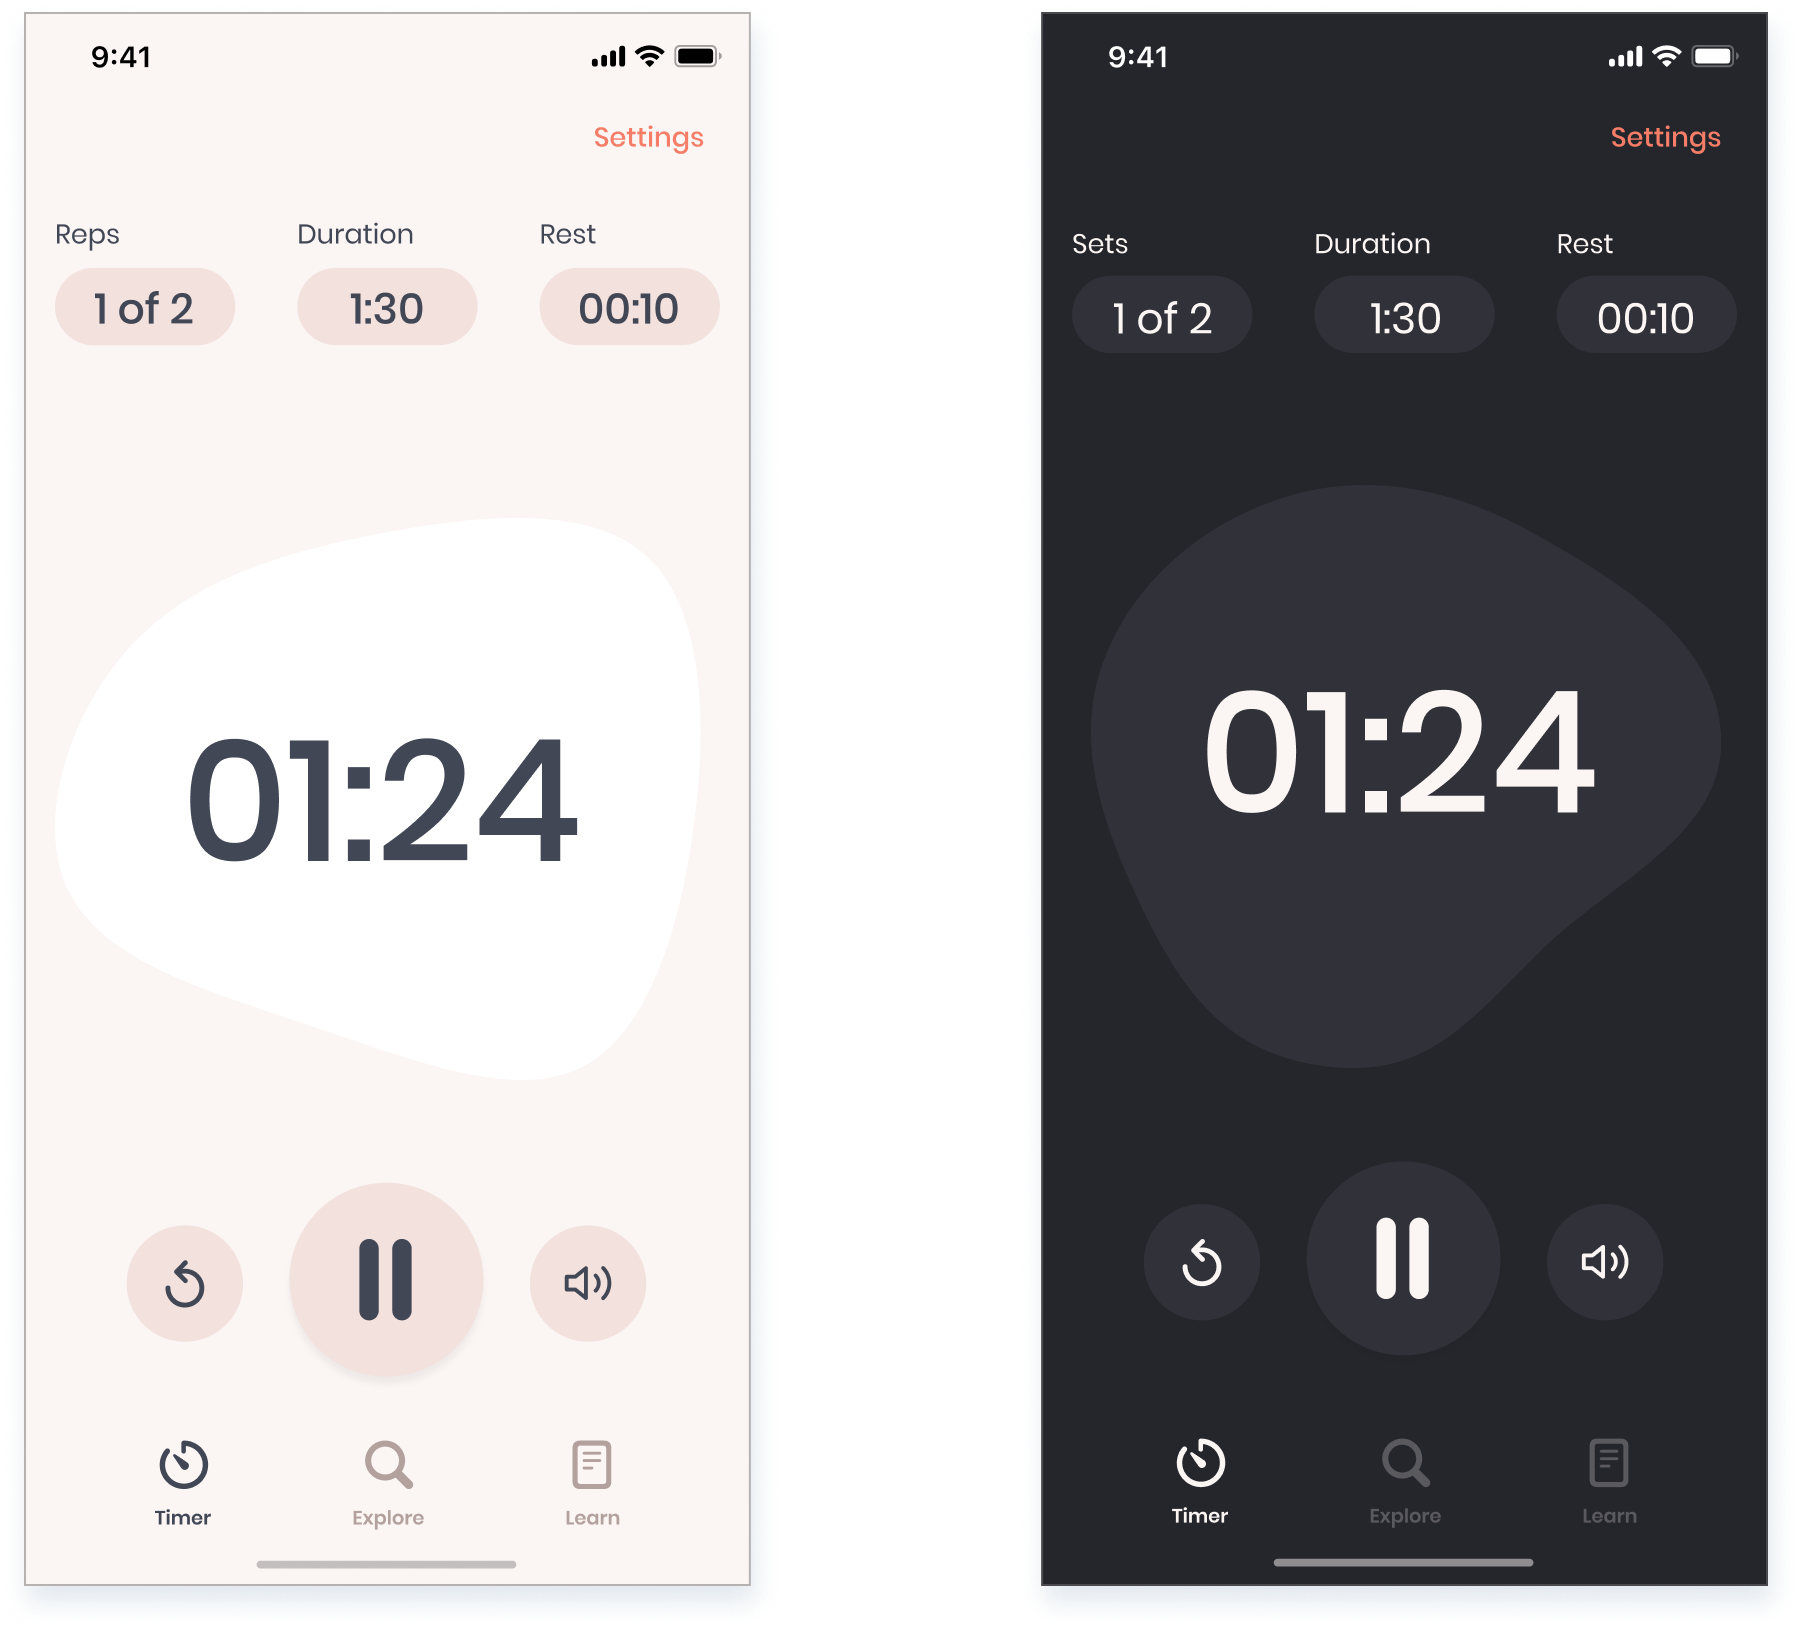 high-fidelity design showing light and dark mode versions of the timer screen